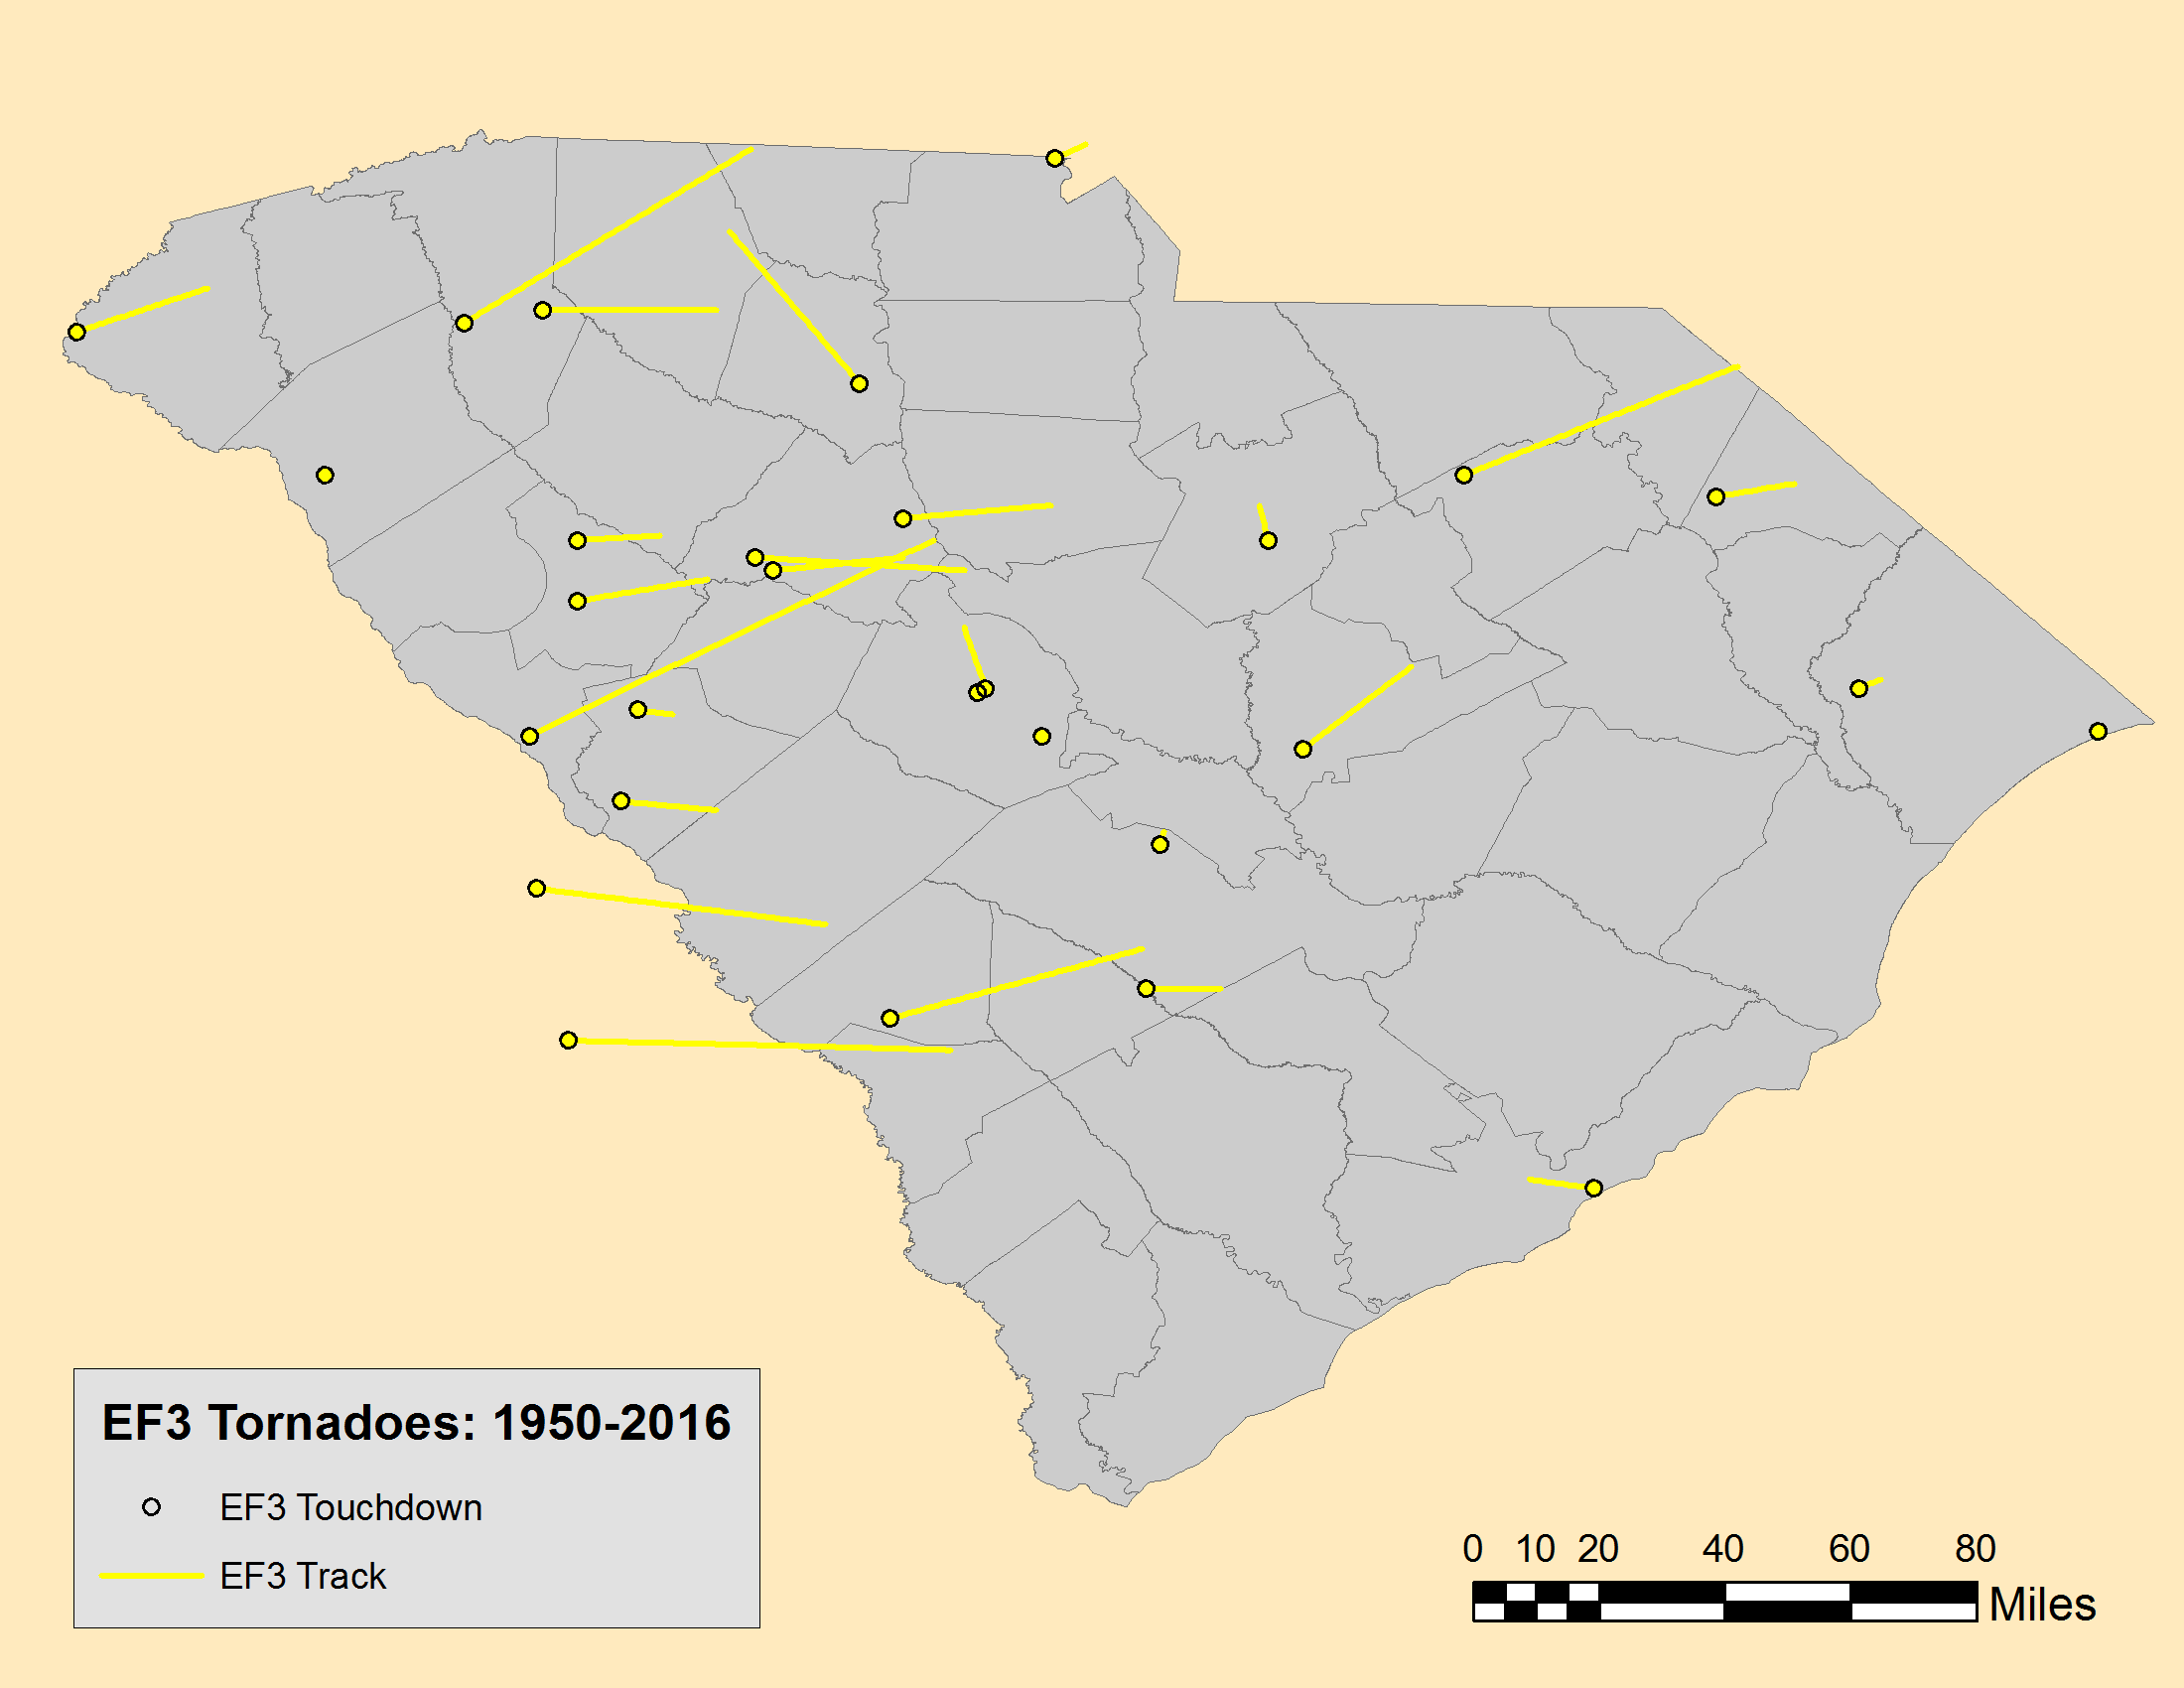 tornadoes have touched down in every south carolina county with the most frequent touchdowns and tracks in the midlands and dee regions